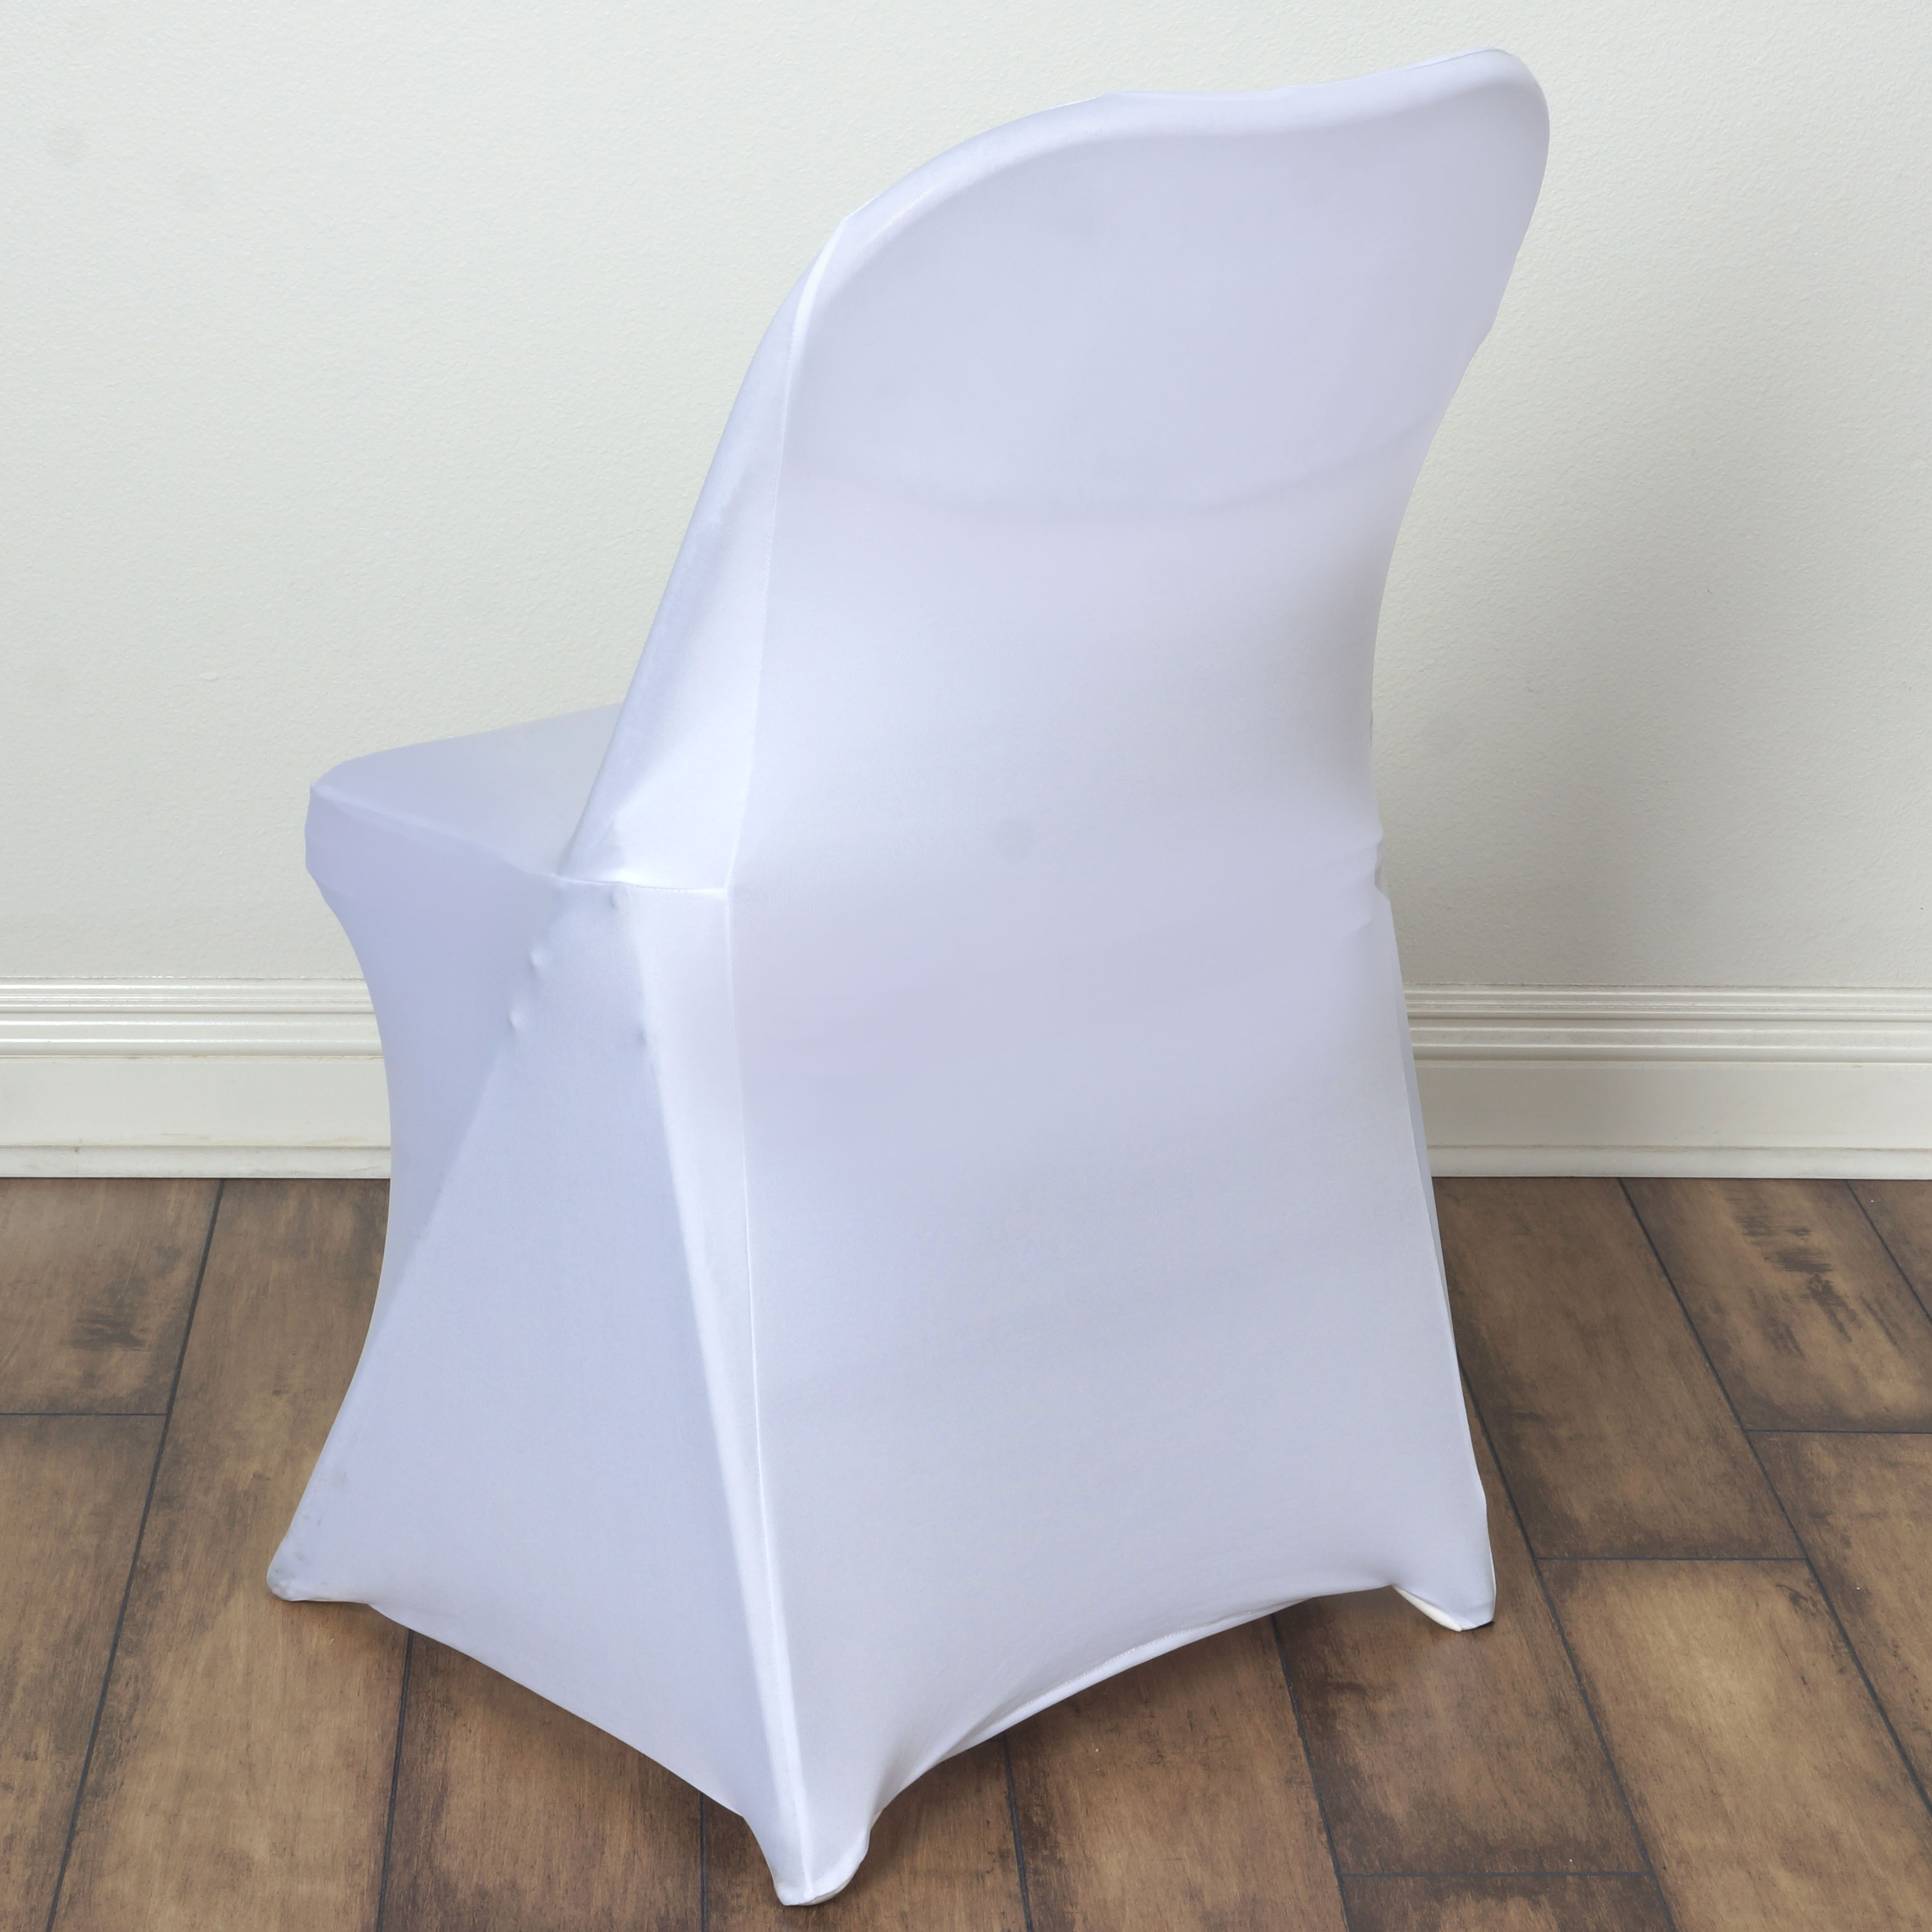 Balsacircle Spandex Strechable Folding Chair Covers Slipcovers For Party Wedding Reception Decorations Com